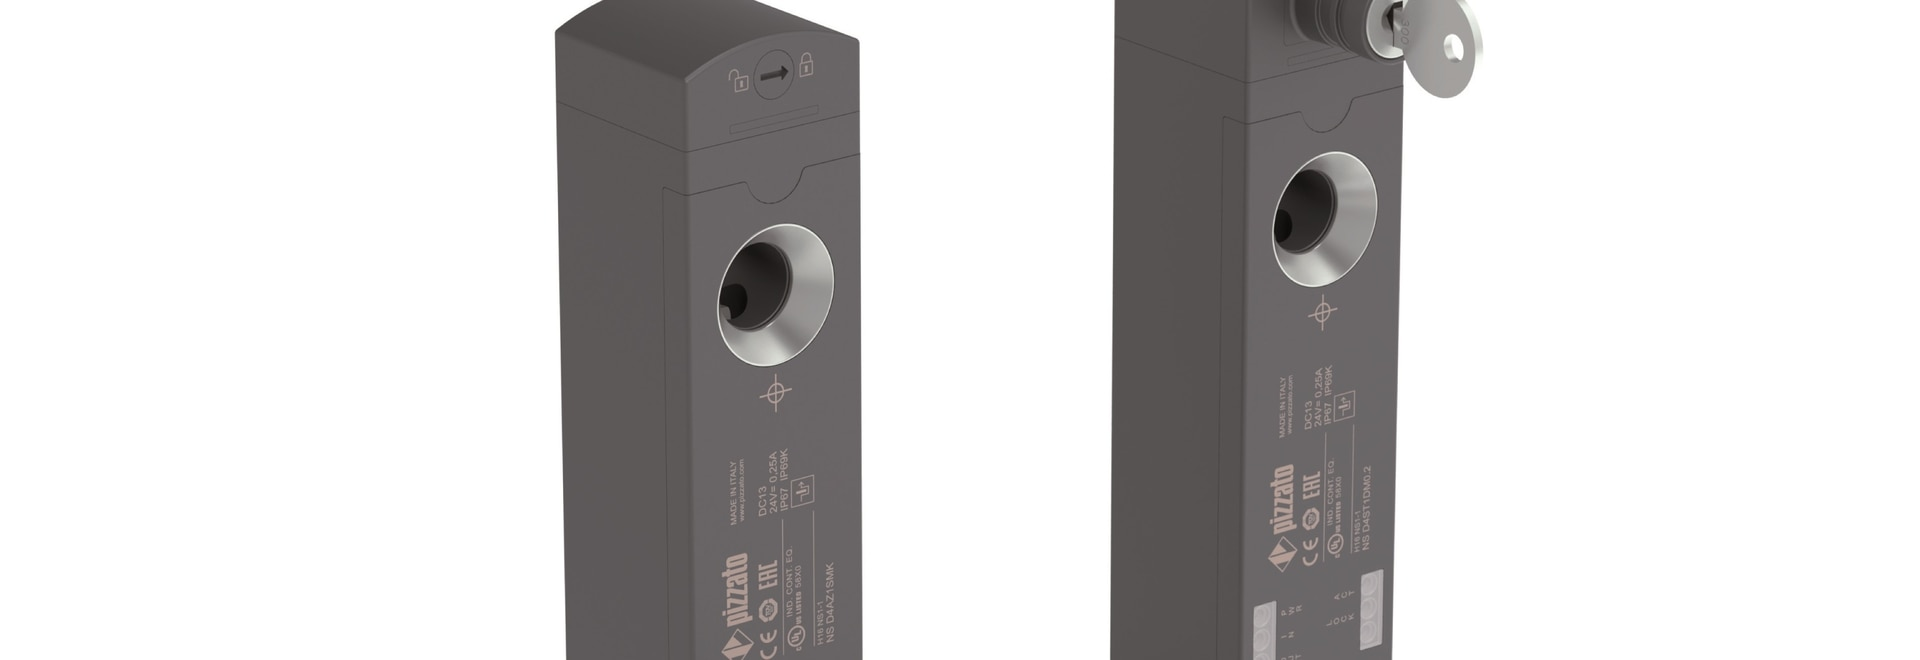 NS series safety switches with solenoid and RFID technology